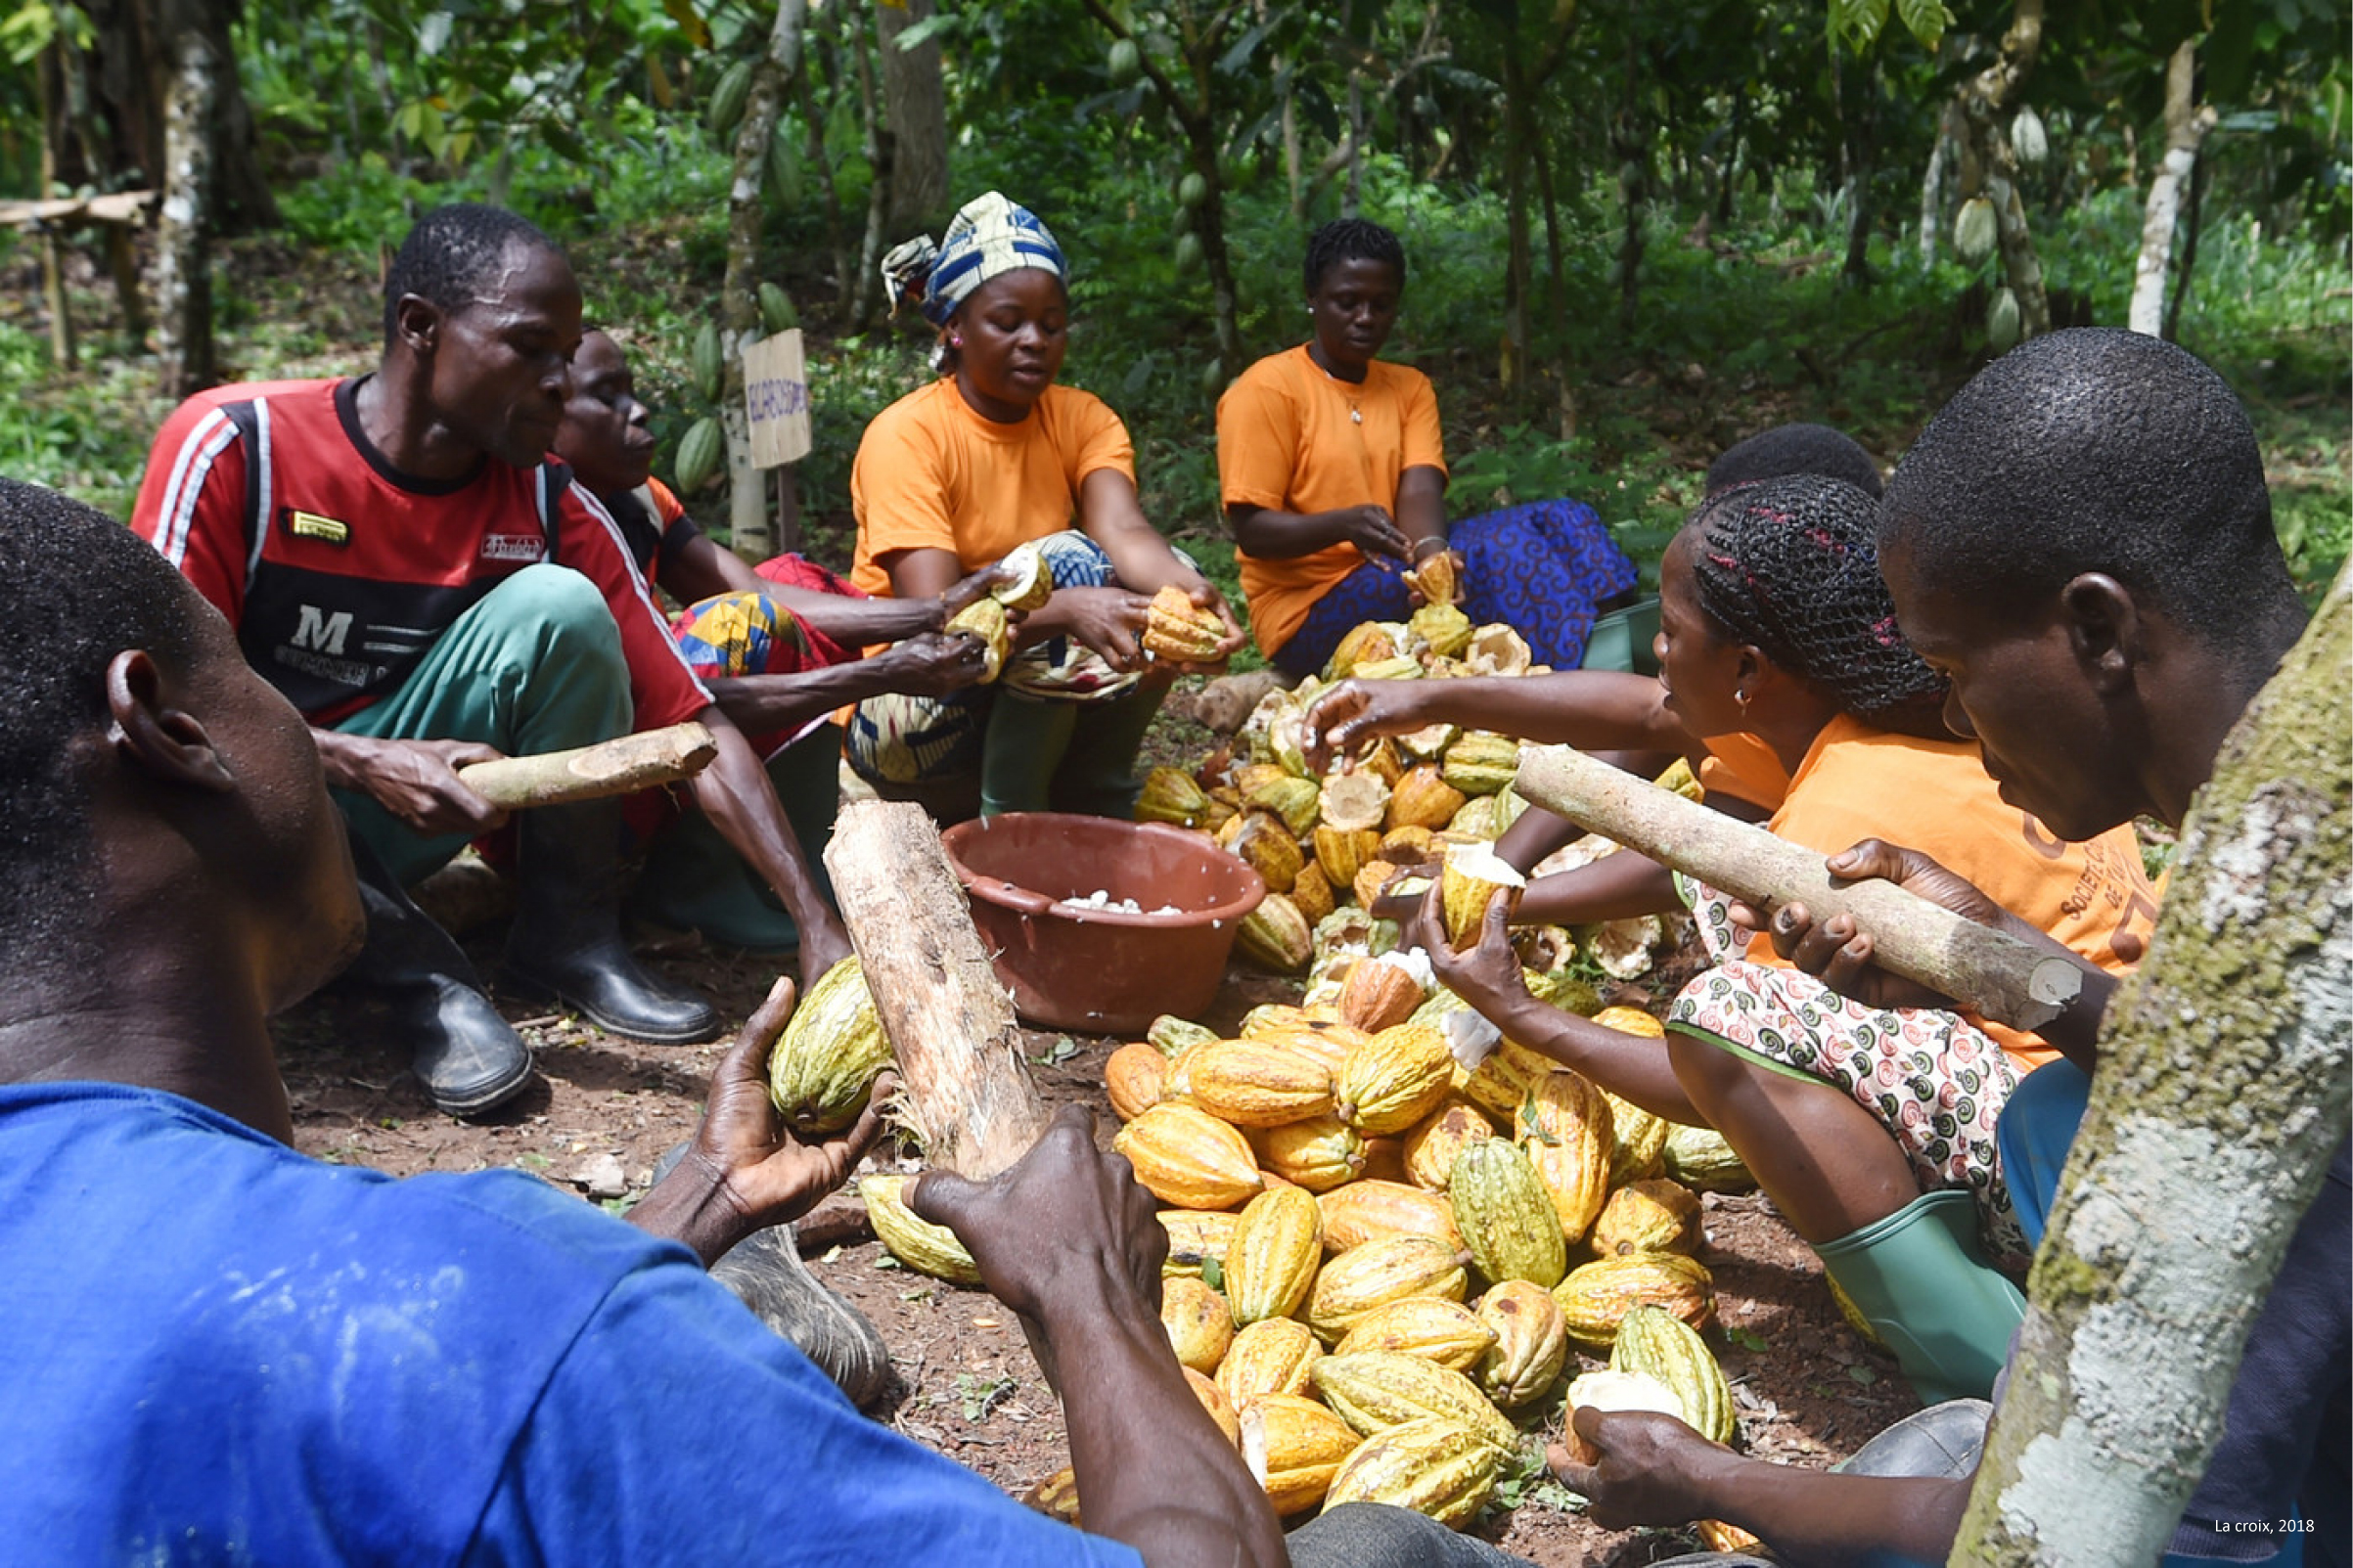 ventdouxprod 2019 nicolas barbier if my continent weren't so ruthless with african economic refugees ivory coast cocoa workers